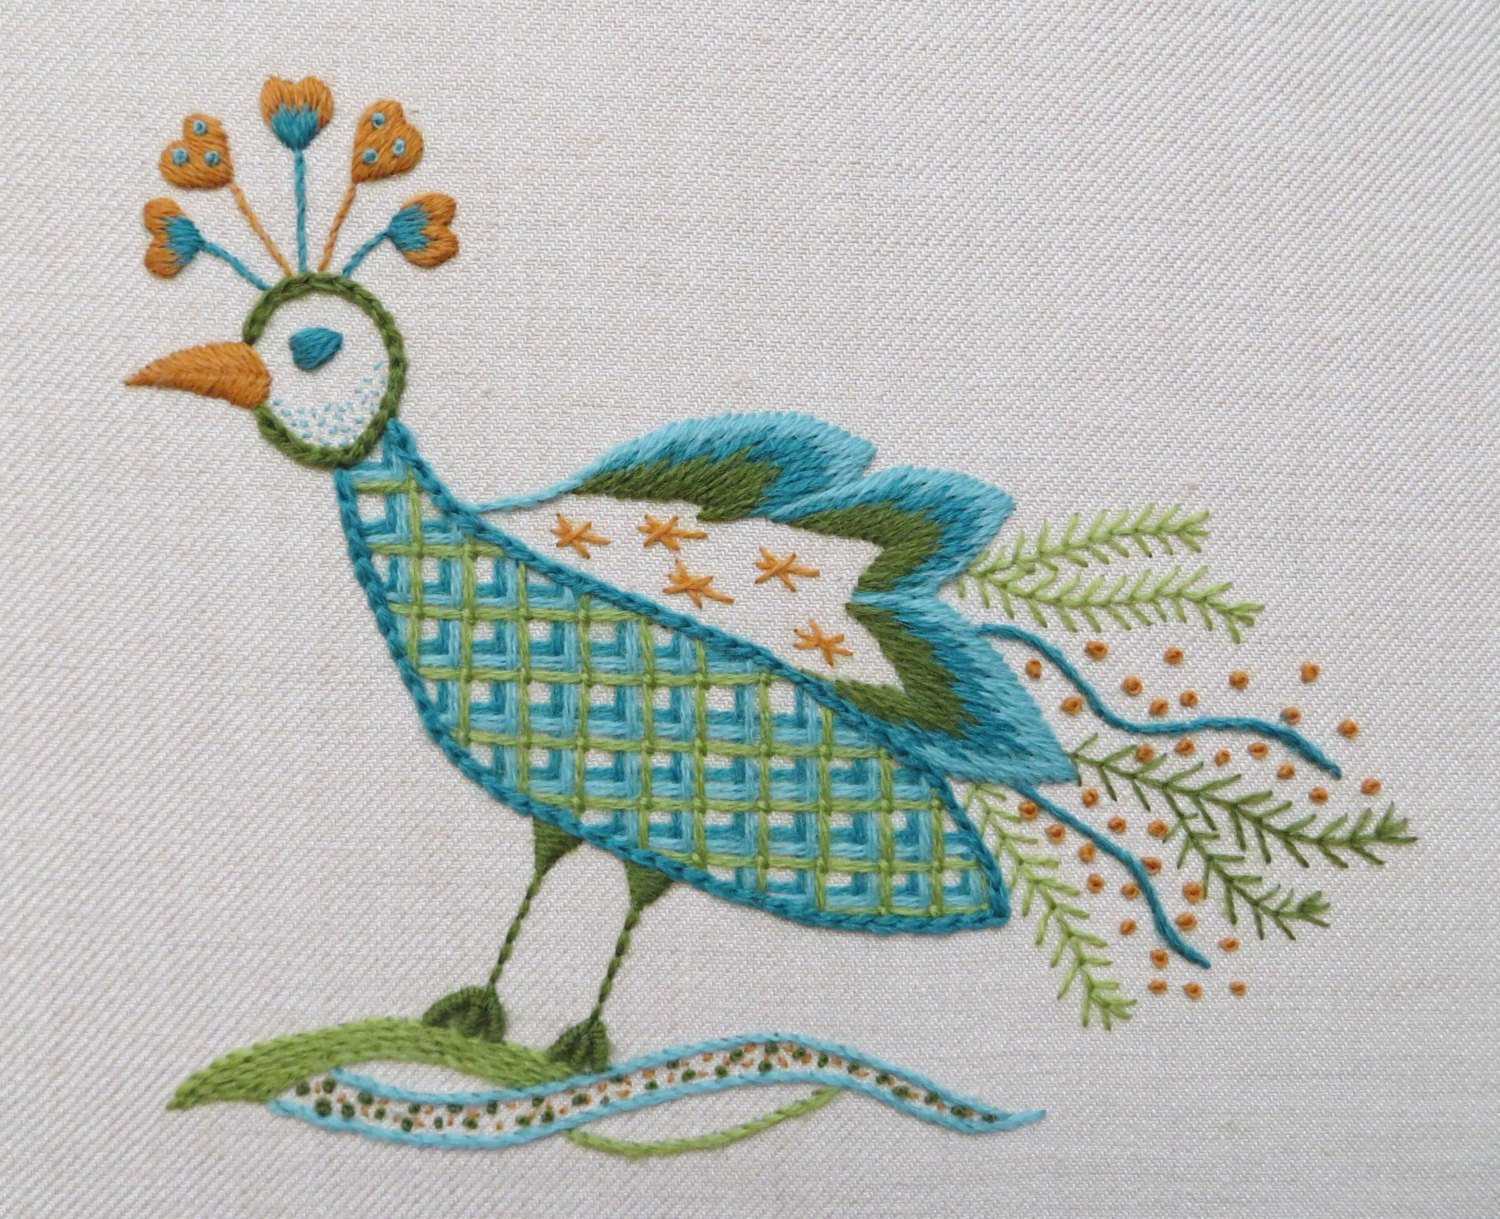 Unique Hand Embroidery Kit In Jacobean Style Peacock Design Hand Embroidery Kits Of Delightful 45 Photos Hand Embroidery Kits